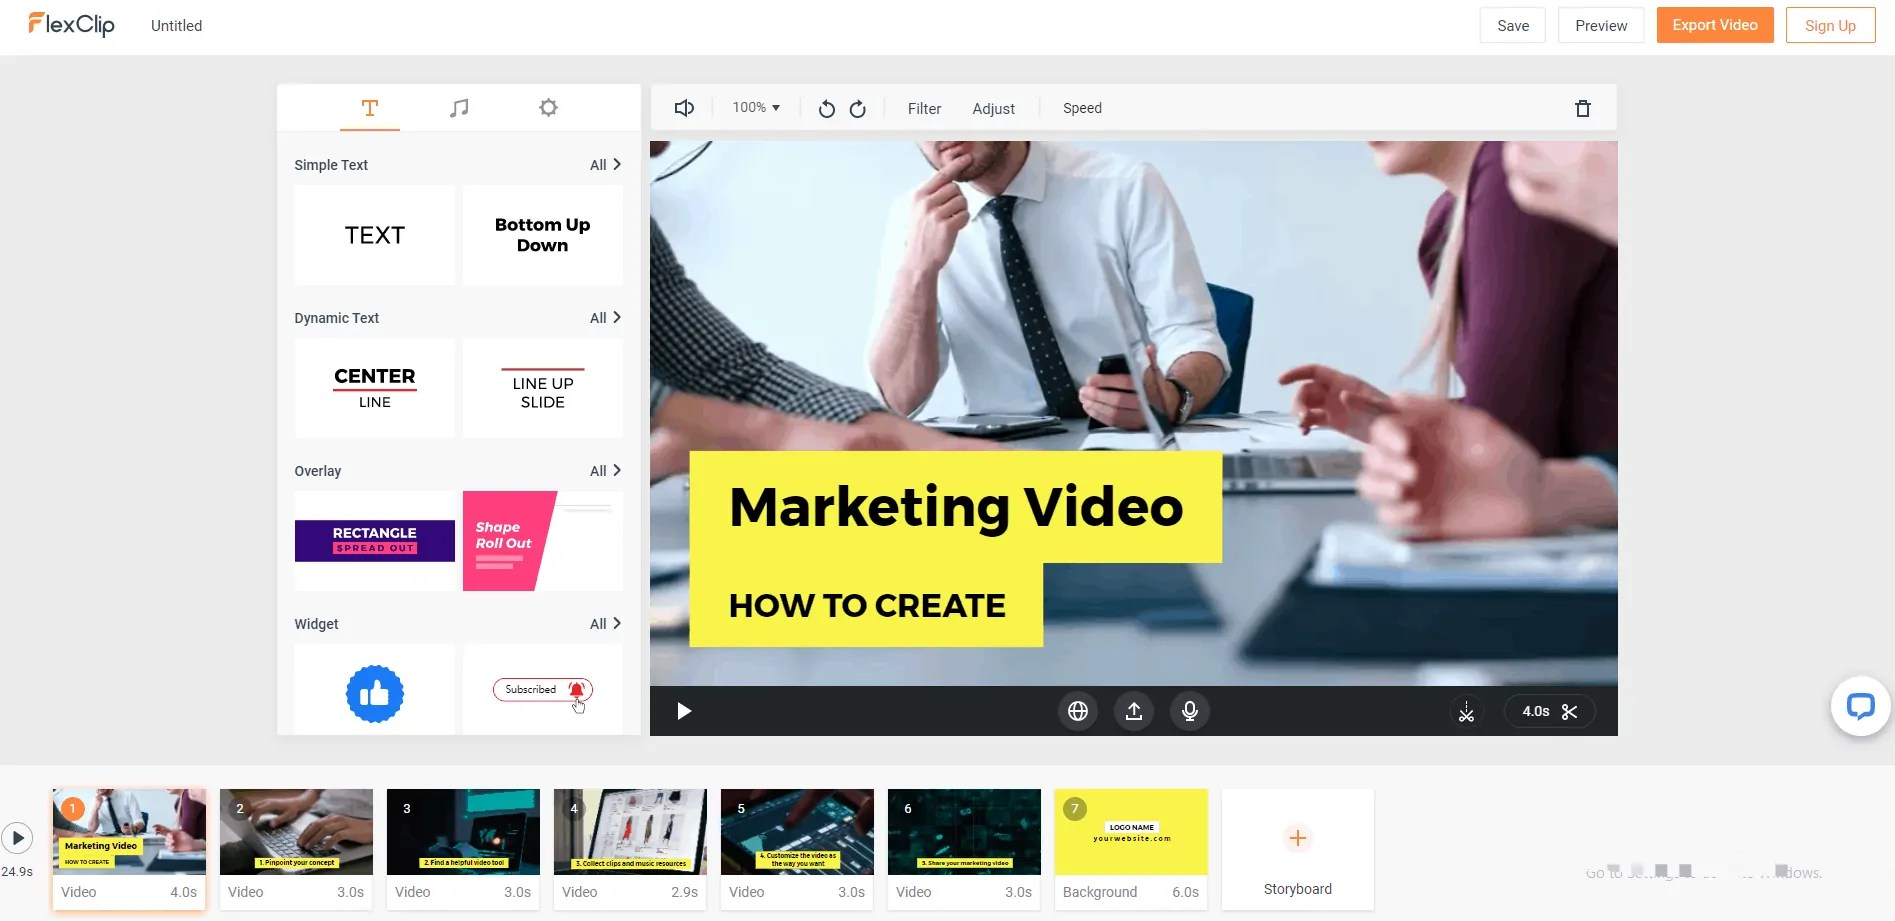 FlexClip Video Maker Review: Create Advanced Marketing Videos for Beginners 2